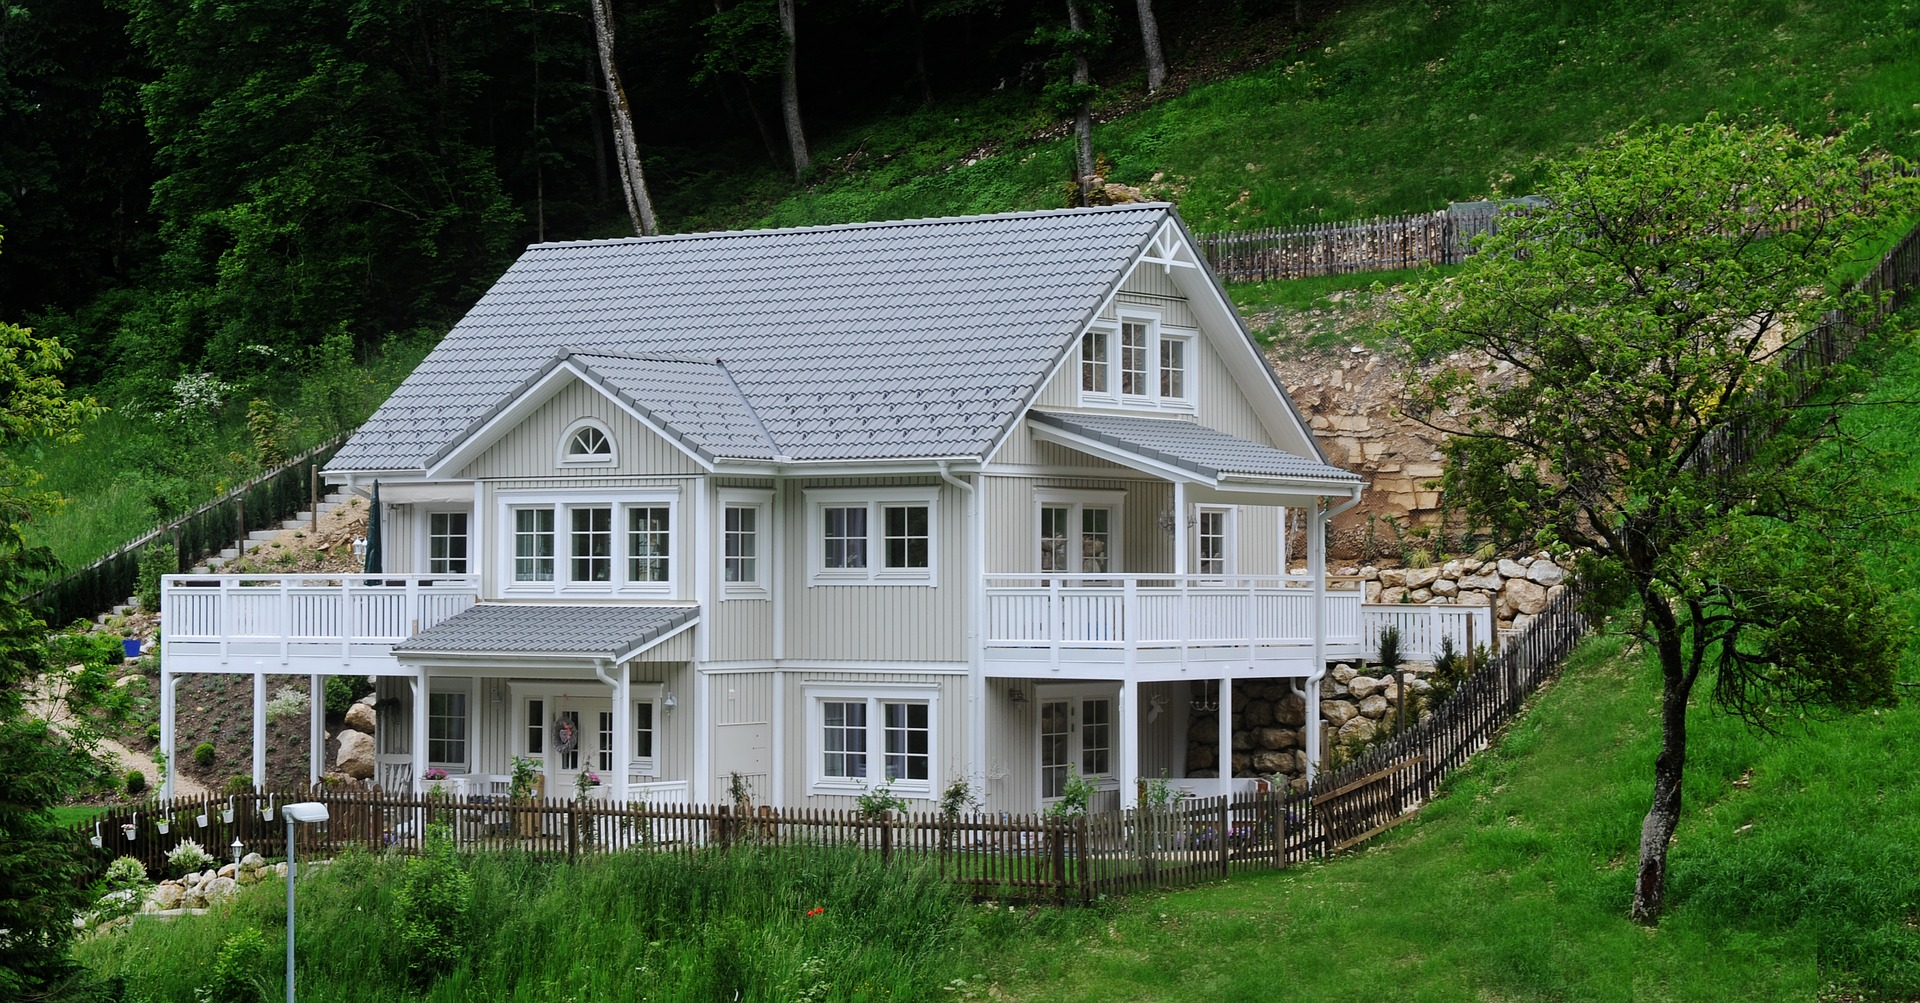 A picture of a lovely home